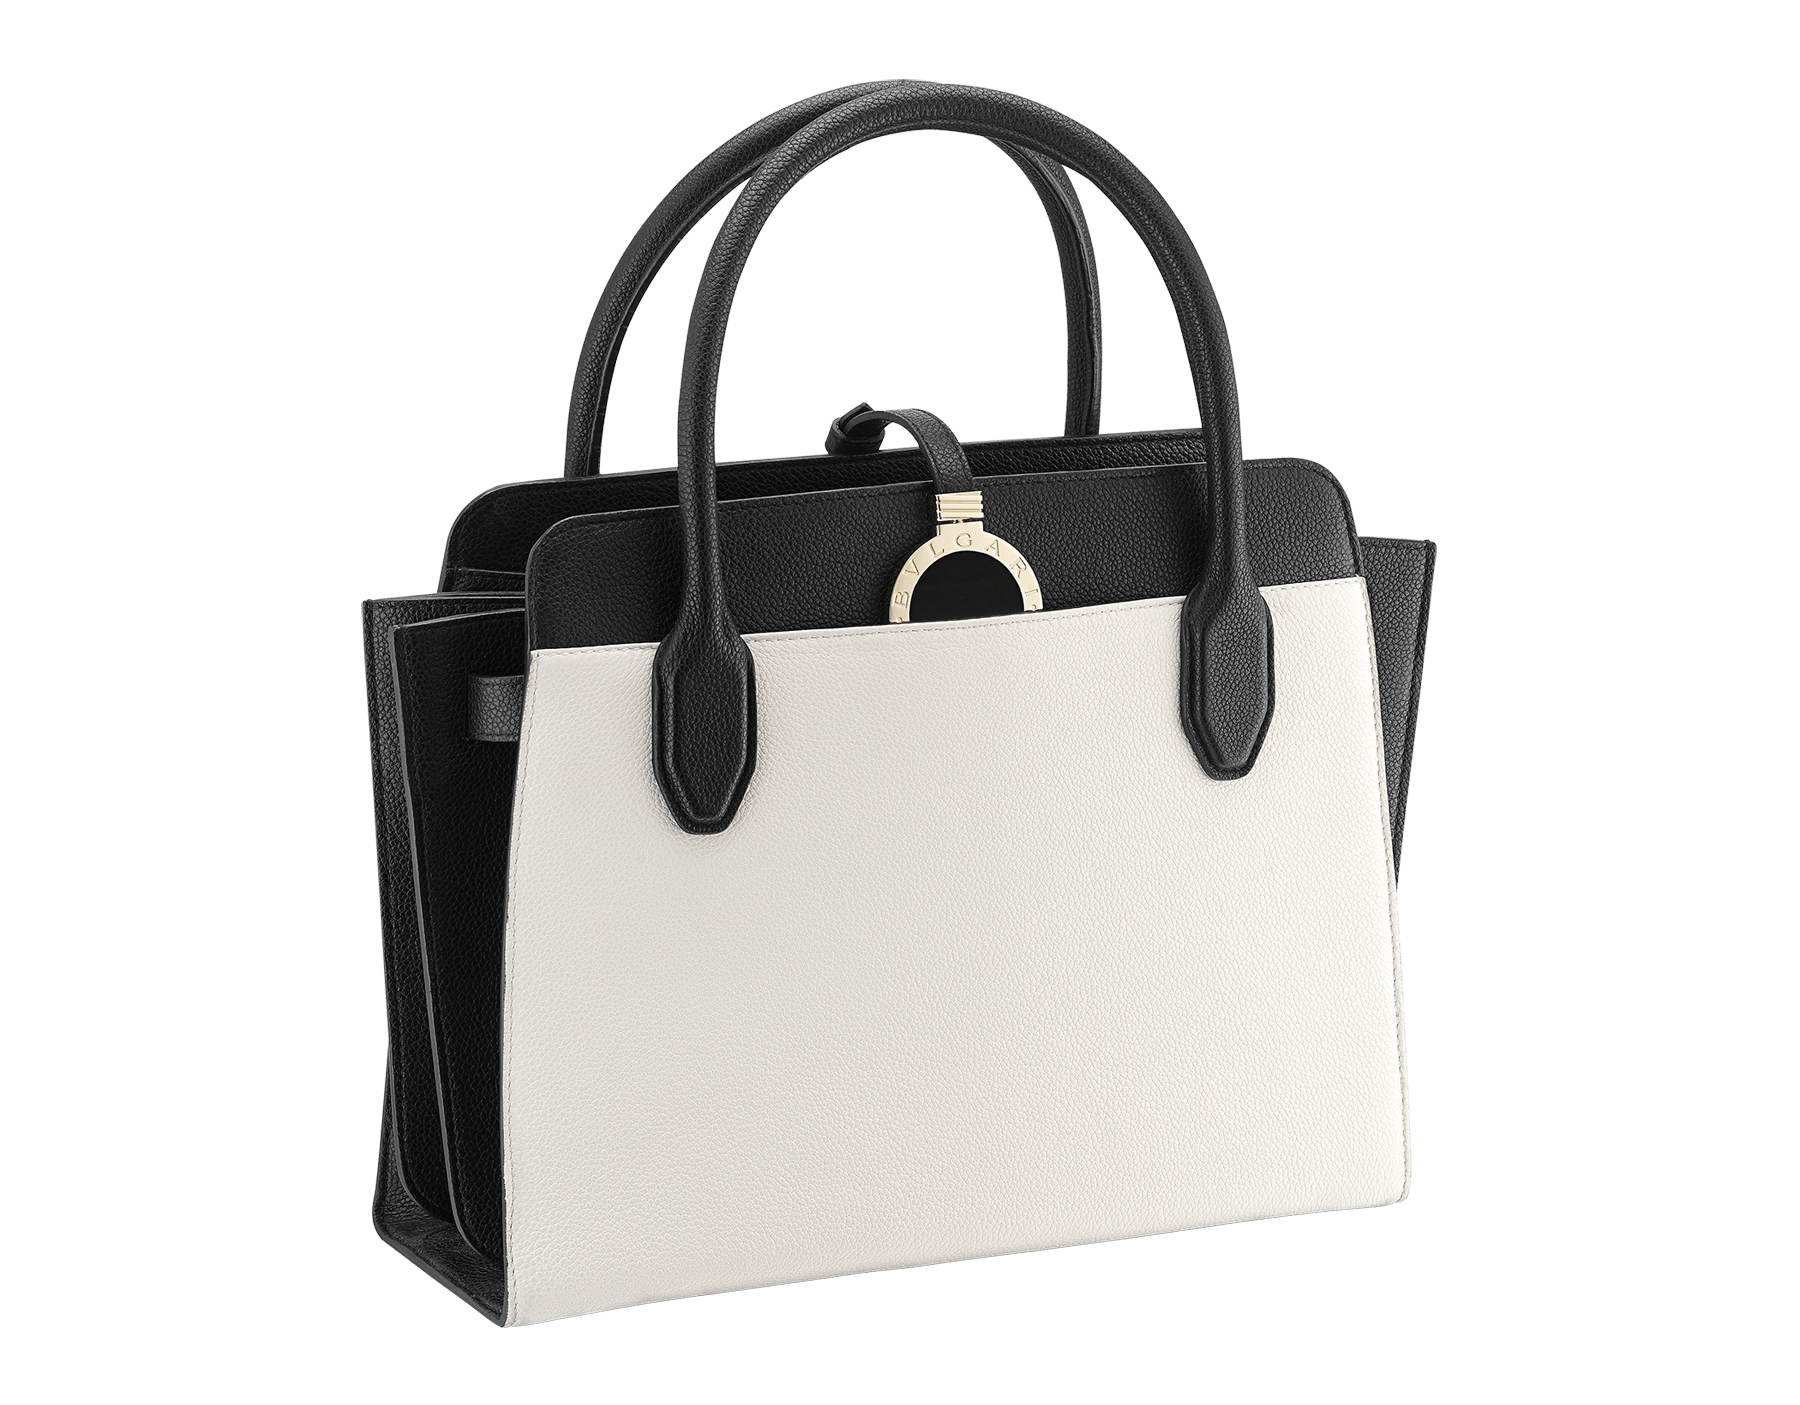 Tote bag BVLGARI BVLGARI Alba in white agate and black grain calf leather with zip closure. Pendant motif in brass light gold plated metal featuring the iconic double logo and Tubogas motif. 282797 image 2